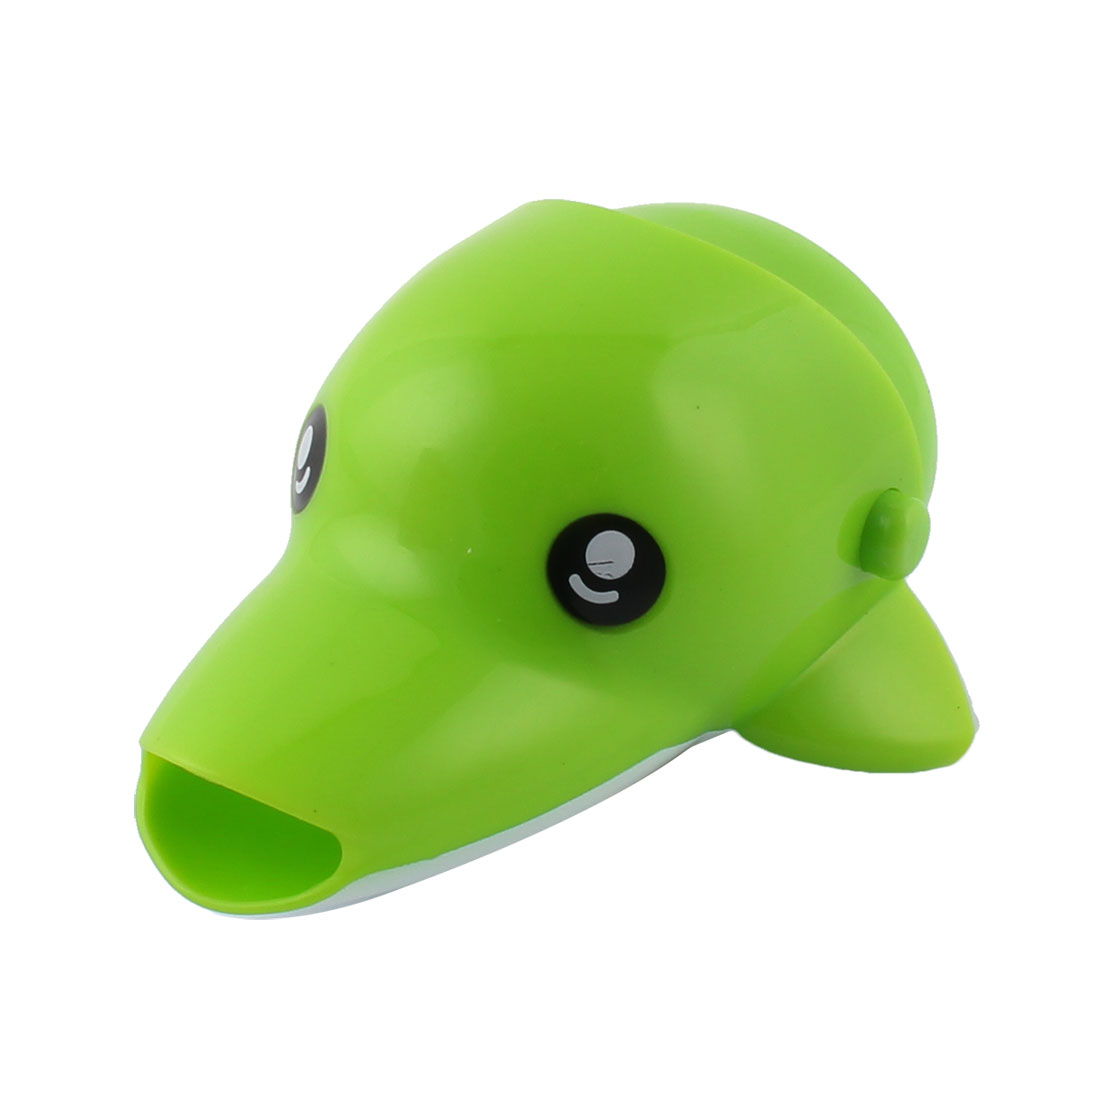 Kitchen Bathroom Silicone Dolphin Shaped Detachable Basin Tap Faucet Extender Green